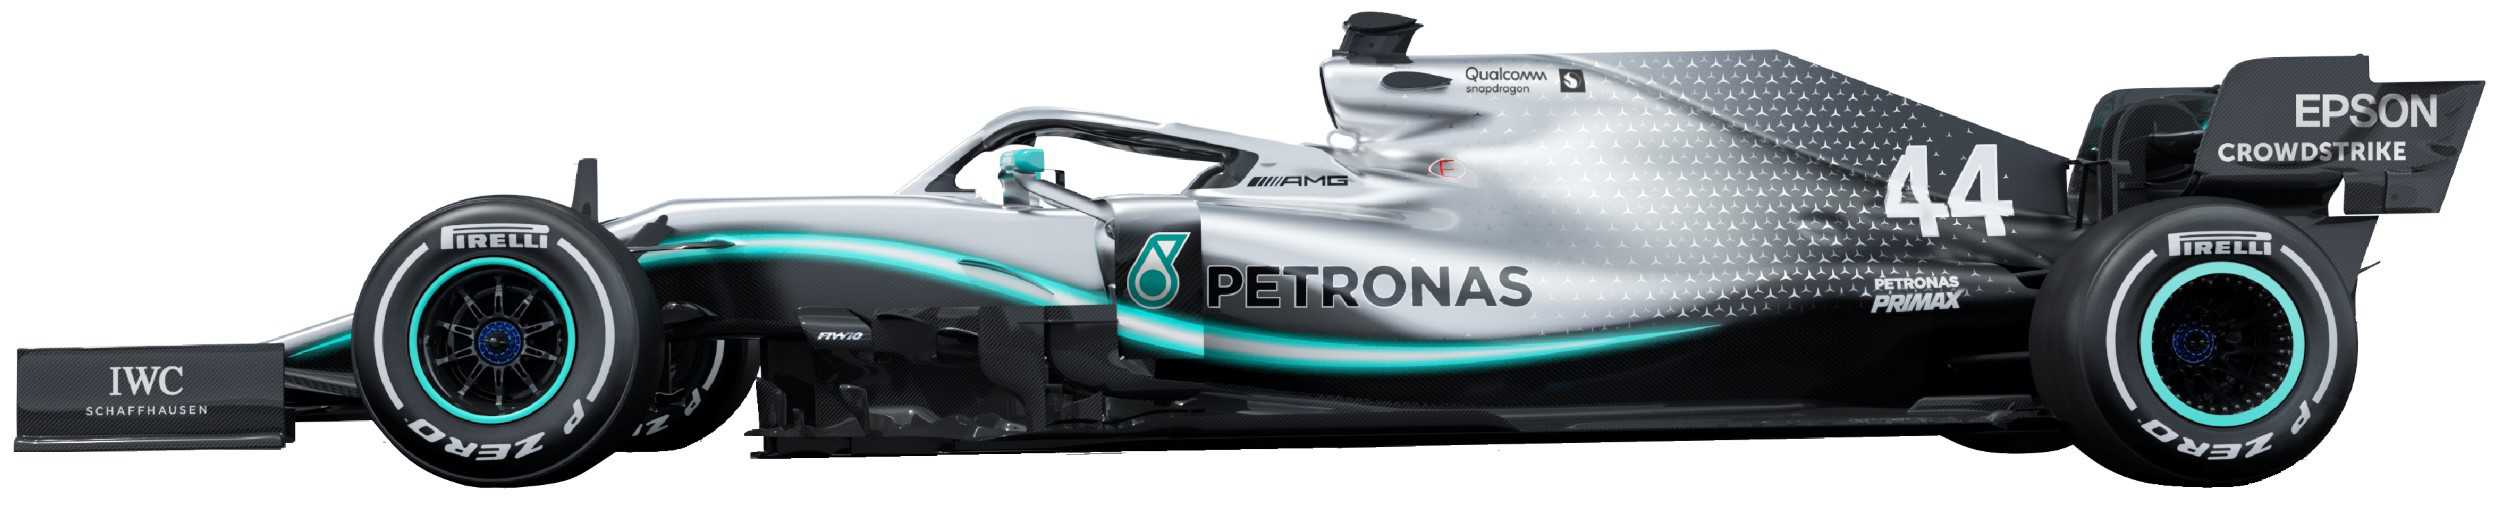 2019 Mercedes W10 no background